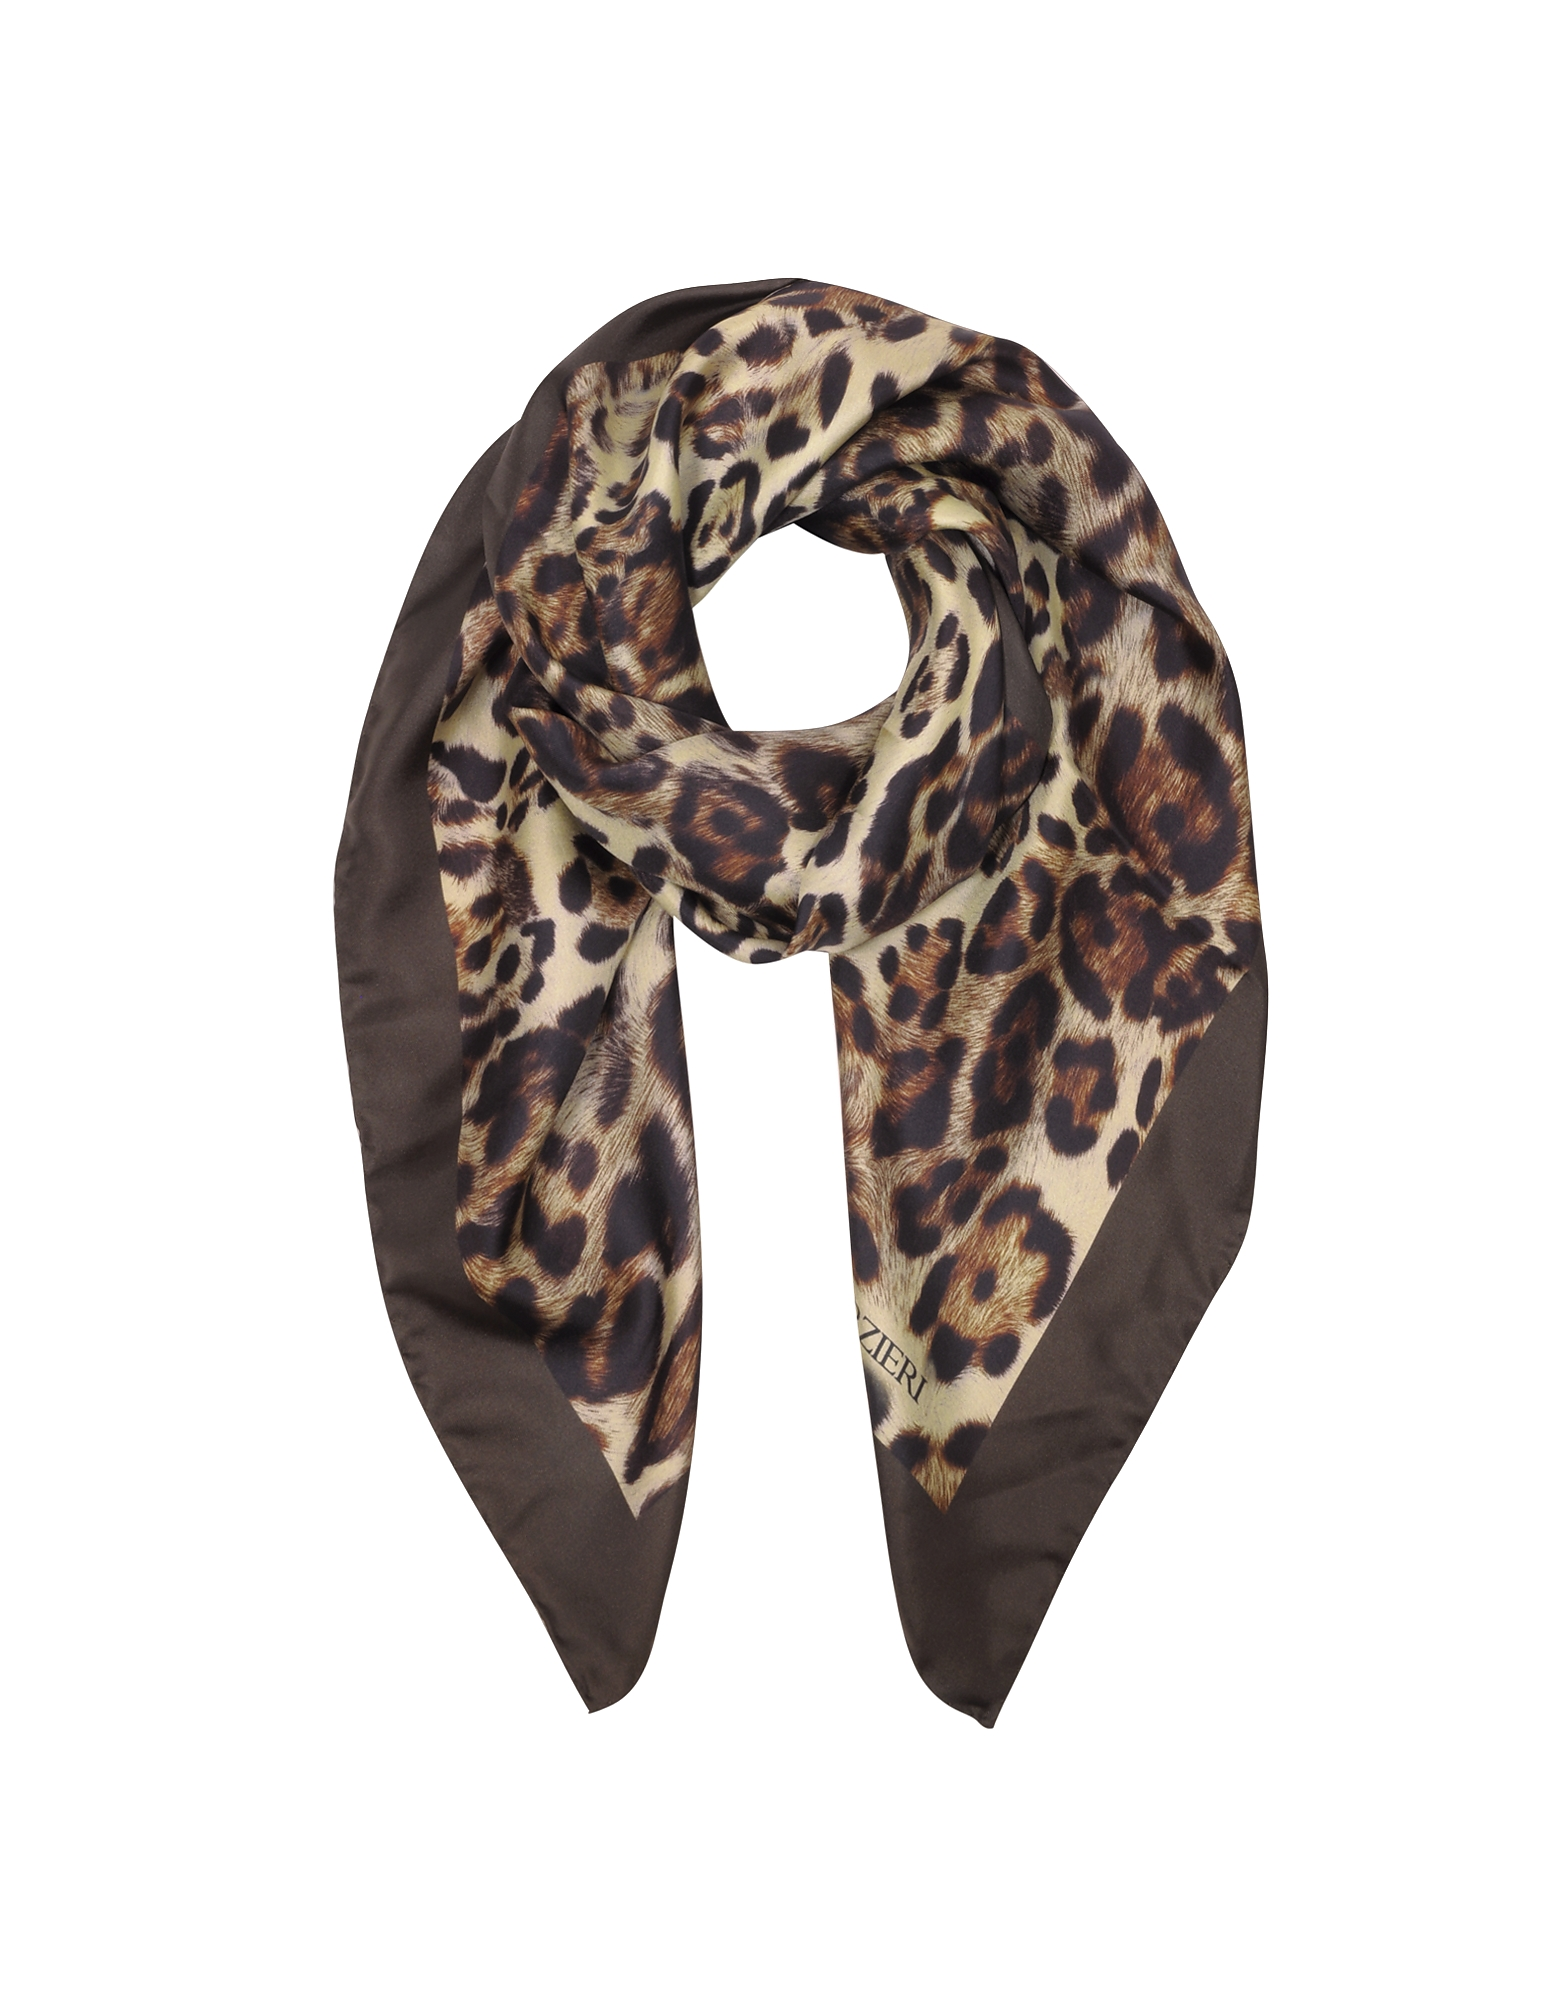 Forzieri Square Scarves, Animal Print Twill Silk Square Scarf